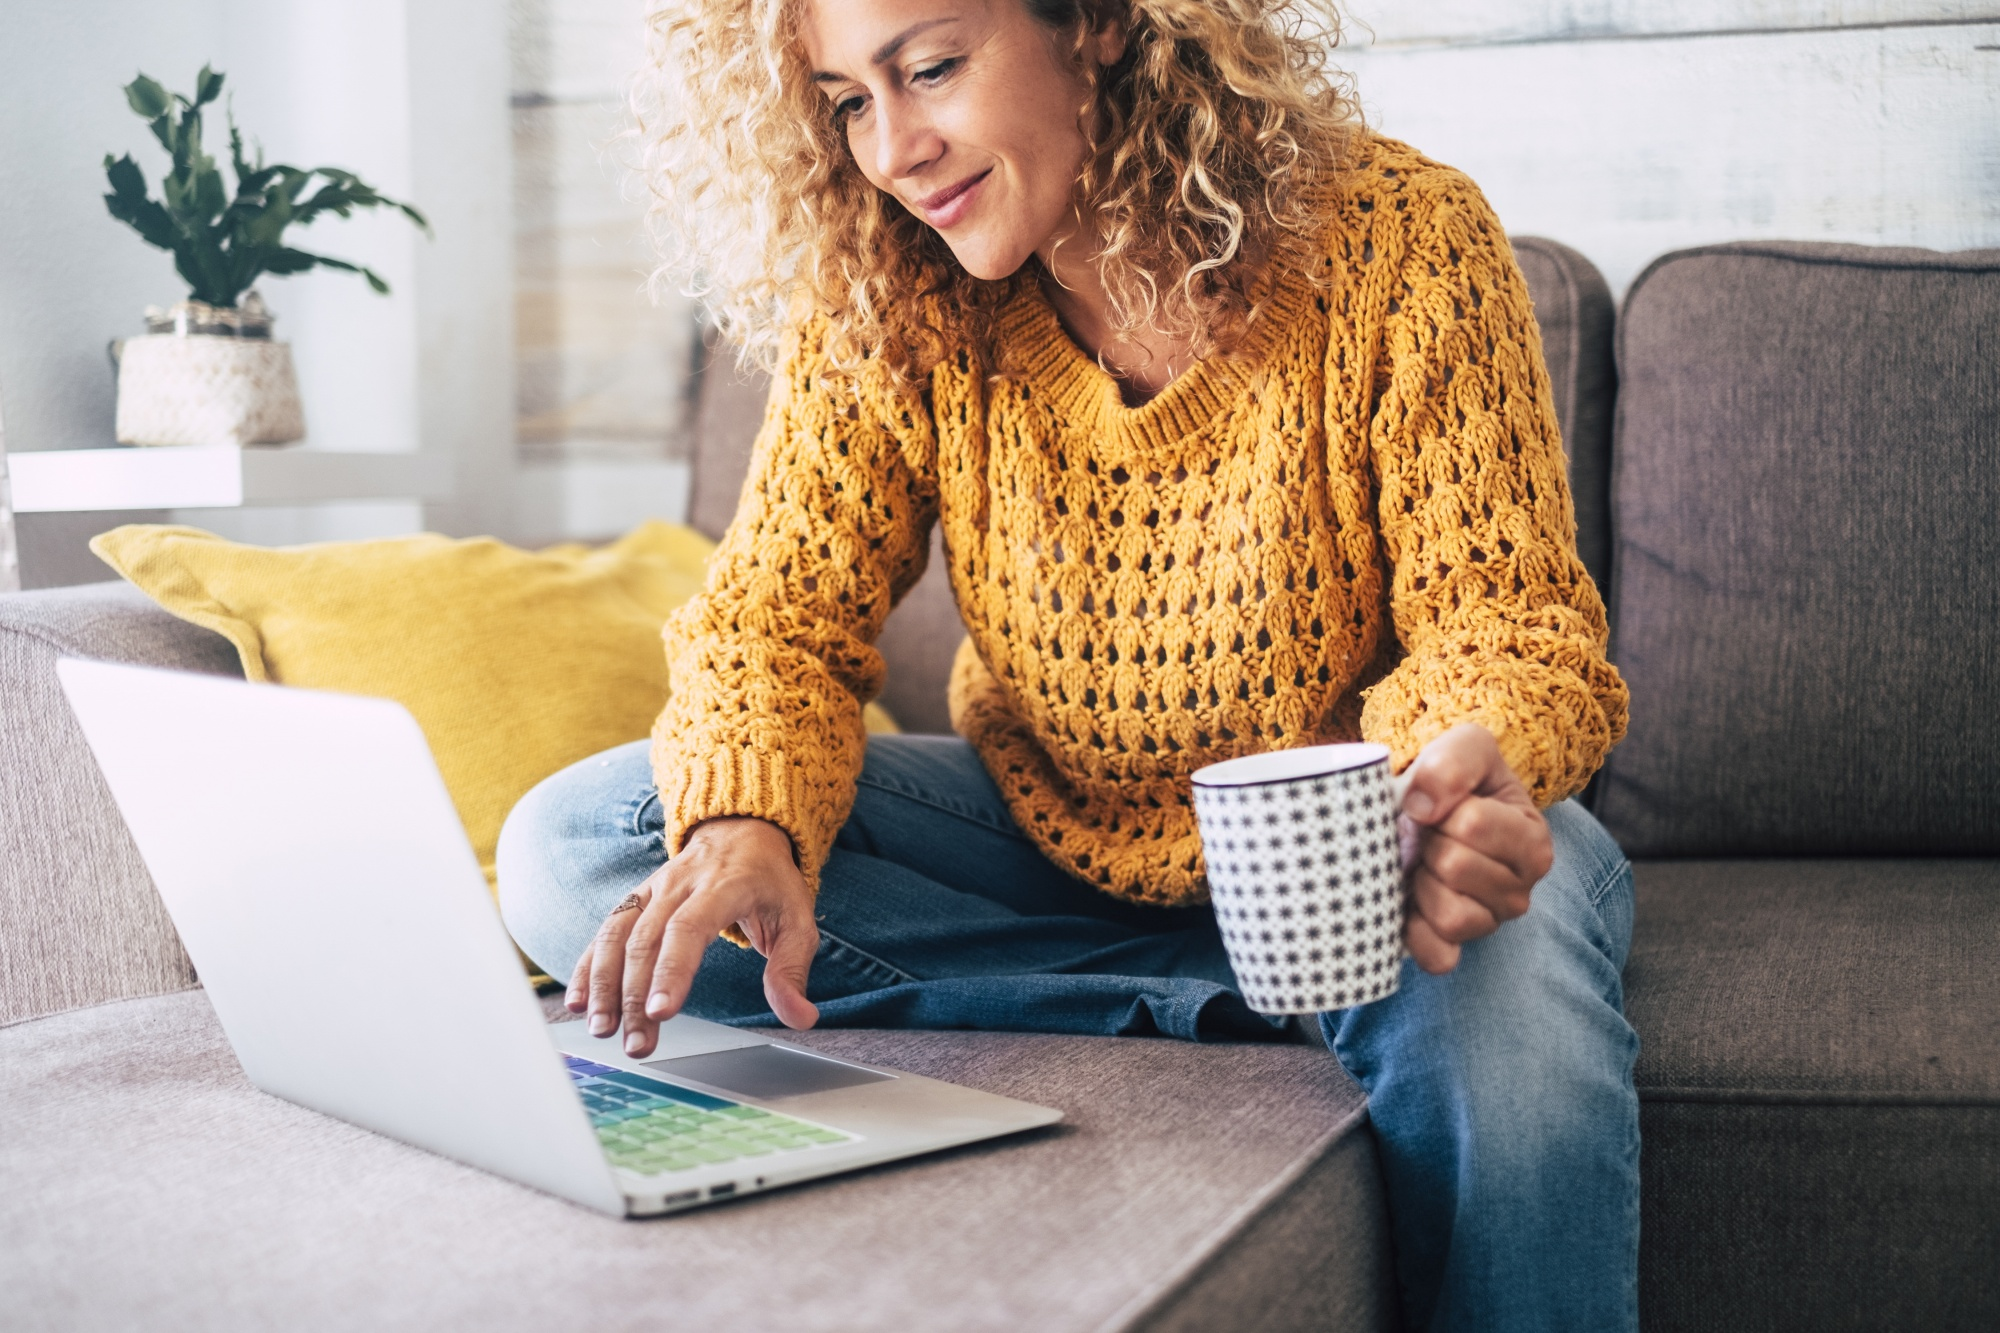 dating profile after 40, woman on sofa relaxing with coffee and typing on computer